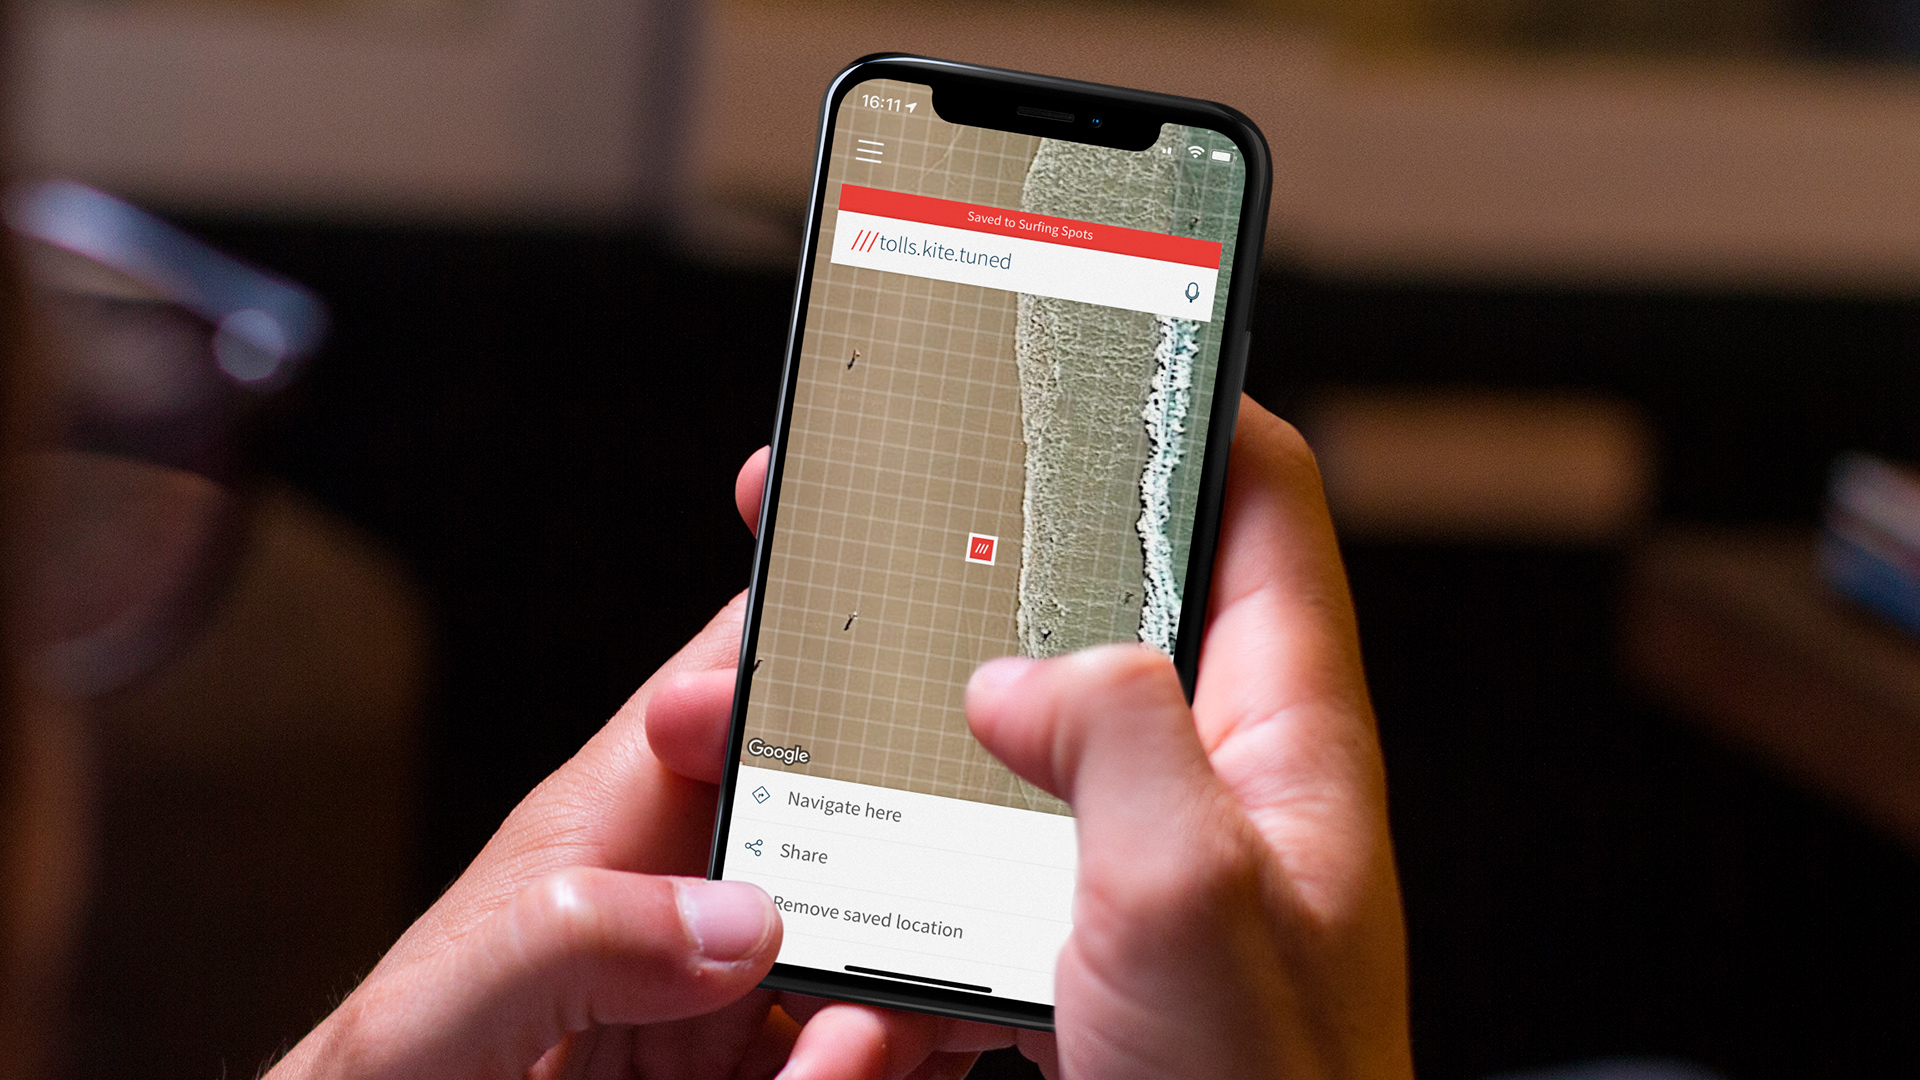 what3words app | Find, share and navigate to precise